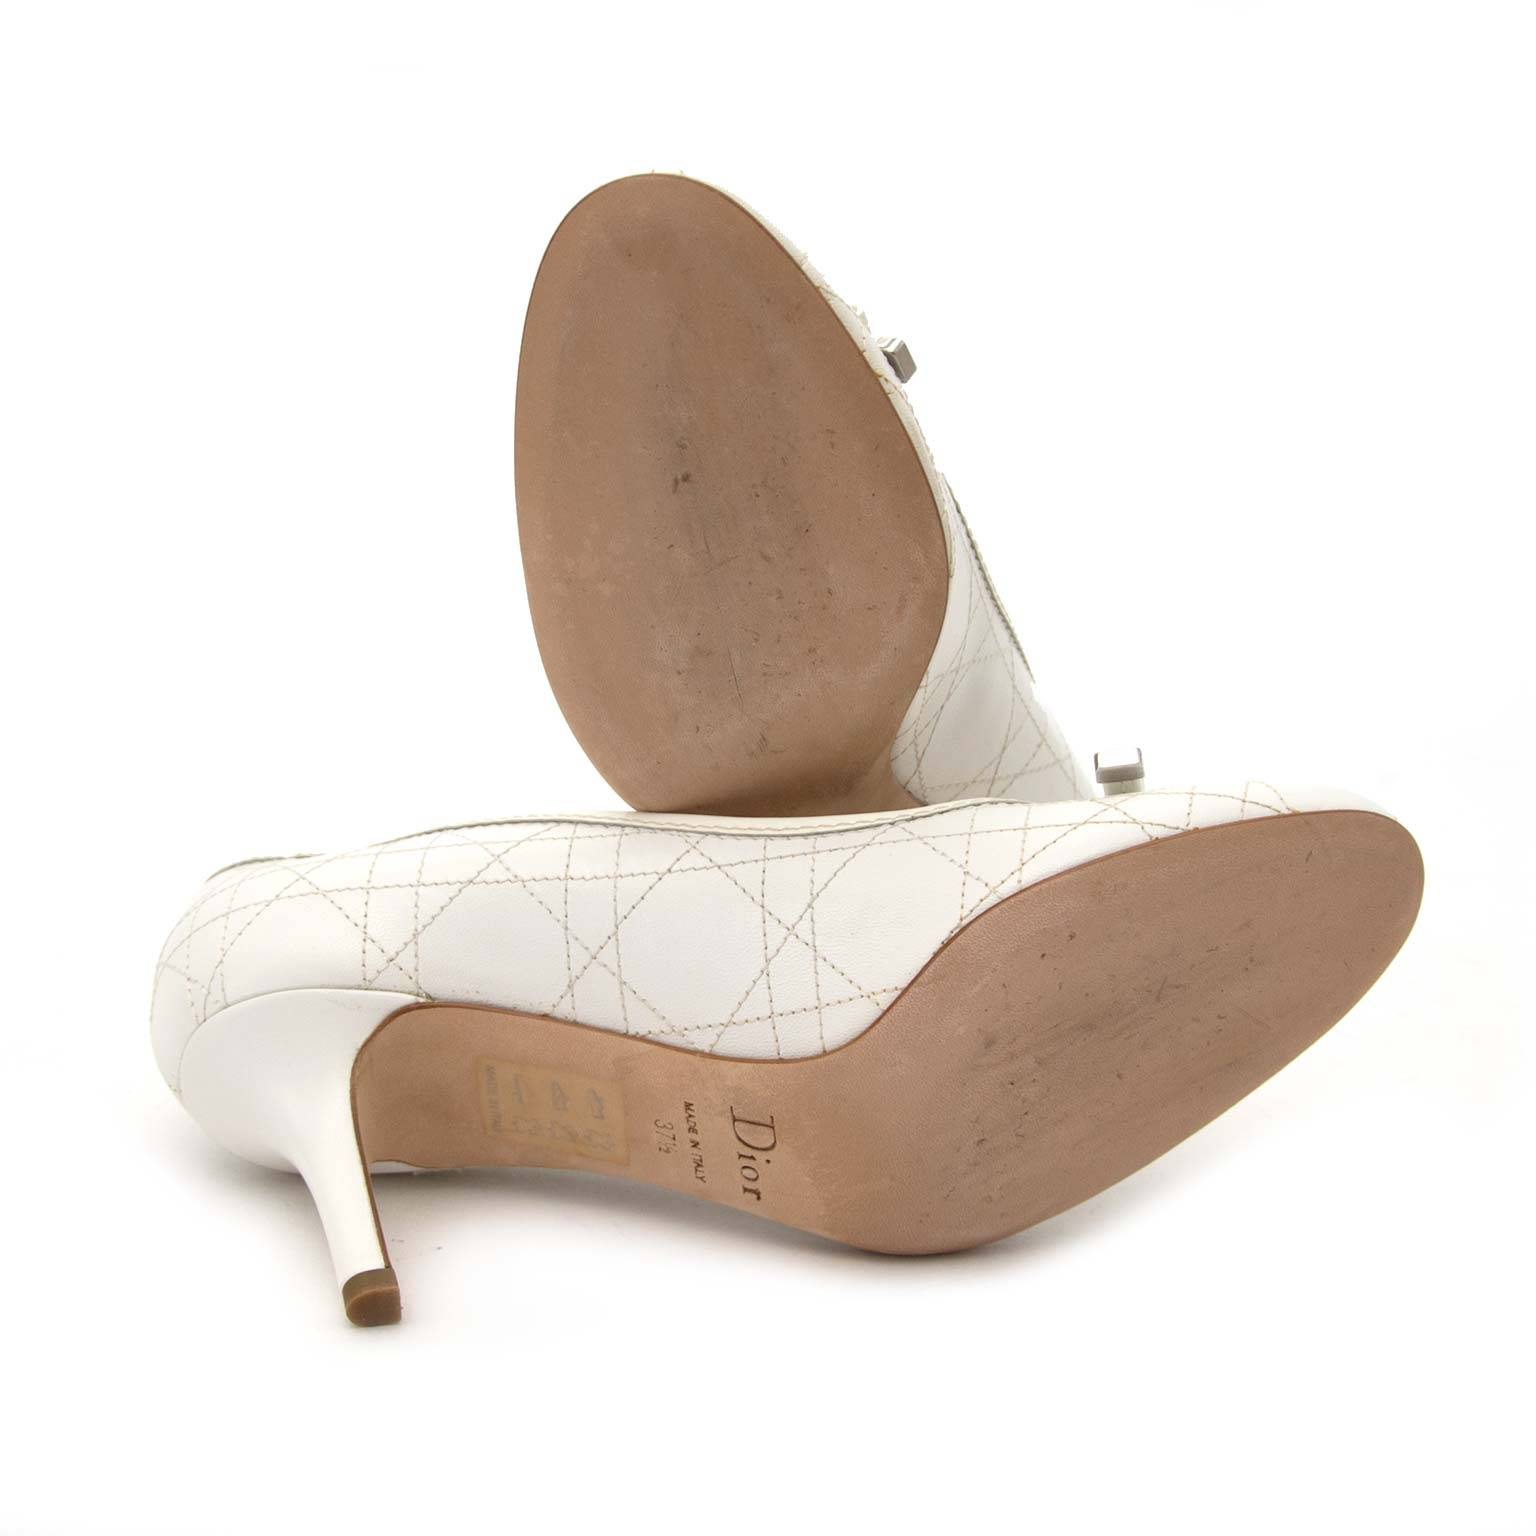 Dior White Quilted Lambskin Sweet Cannage Leather Heels - Size 37,5